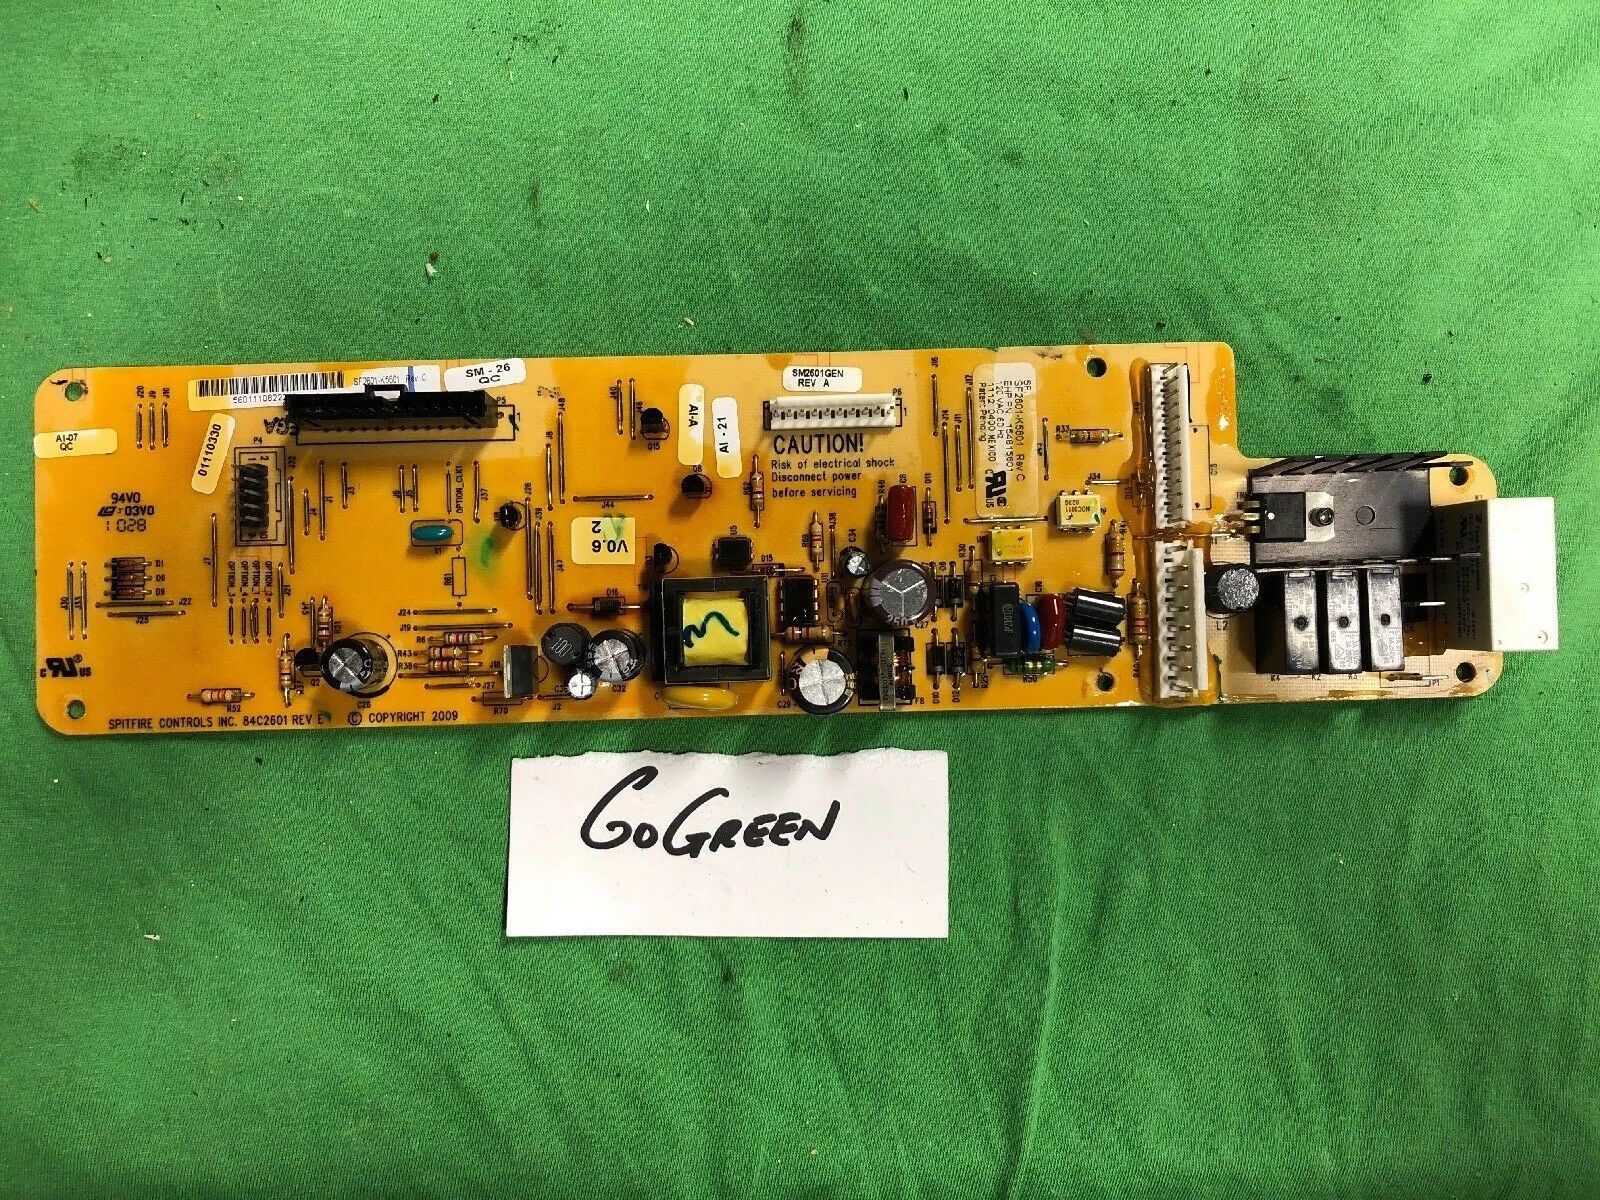 154815601 SF2601-KA 5601 Frigidaire Dishwasher Control *1 Year Warranty